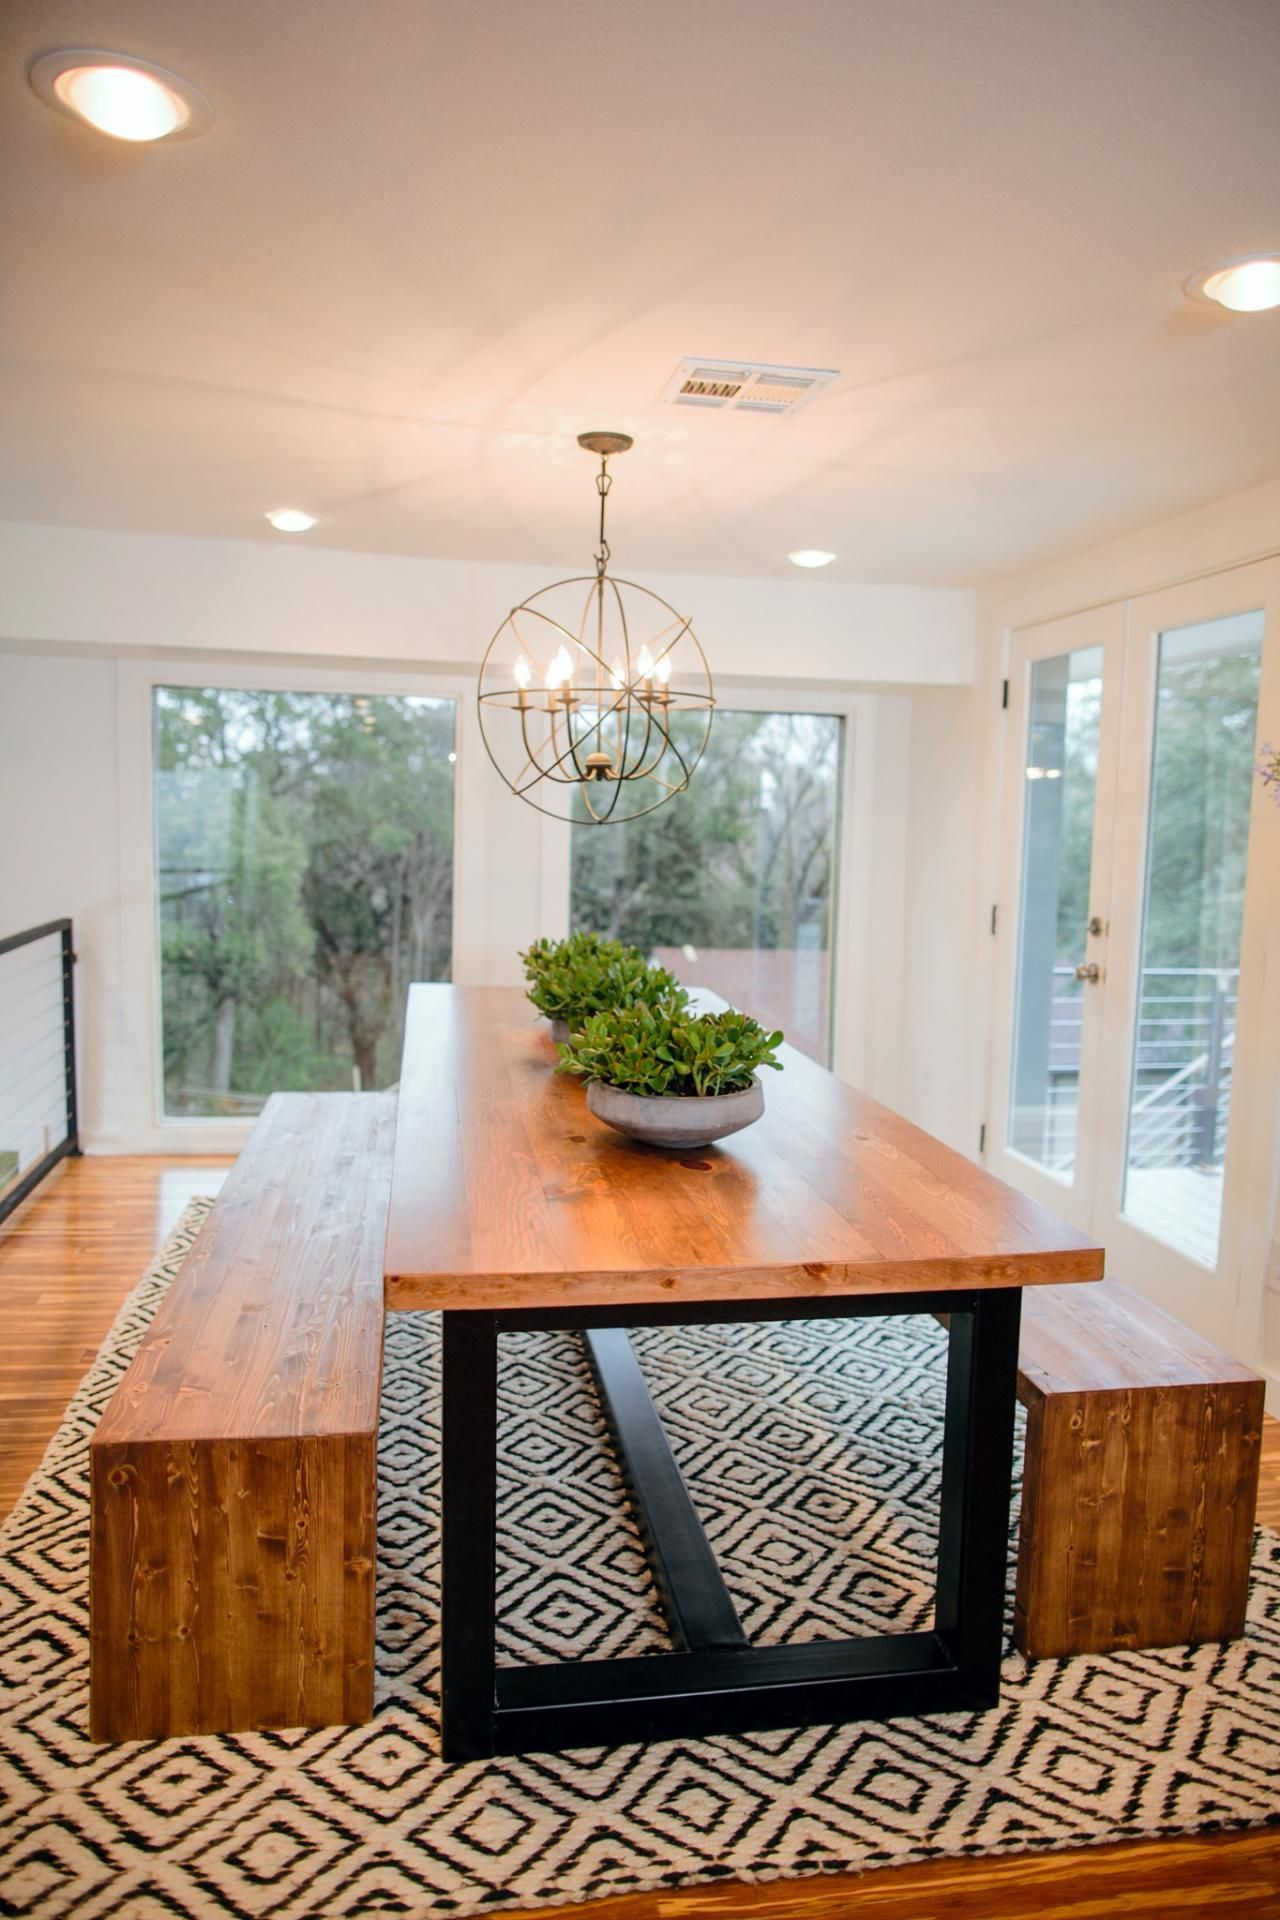 Beautiful Accrual Of Hermetic Wood Dining Tables At Modish Living Including Rustic Table